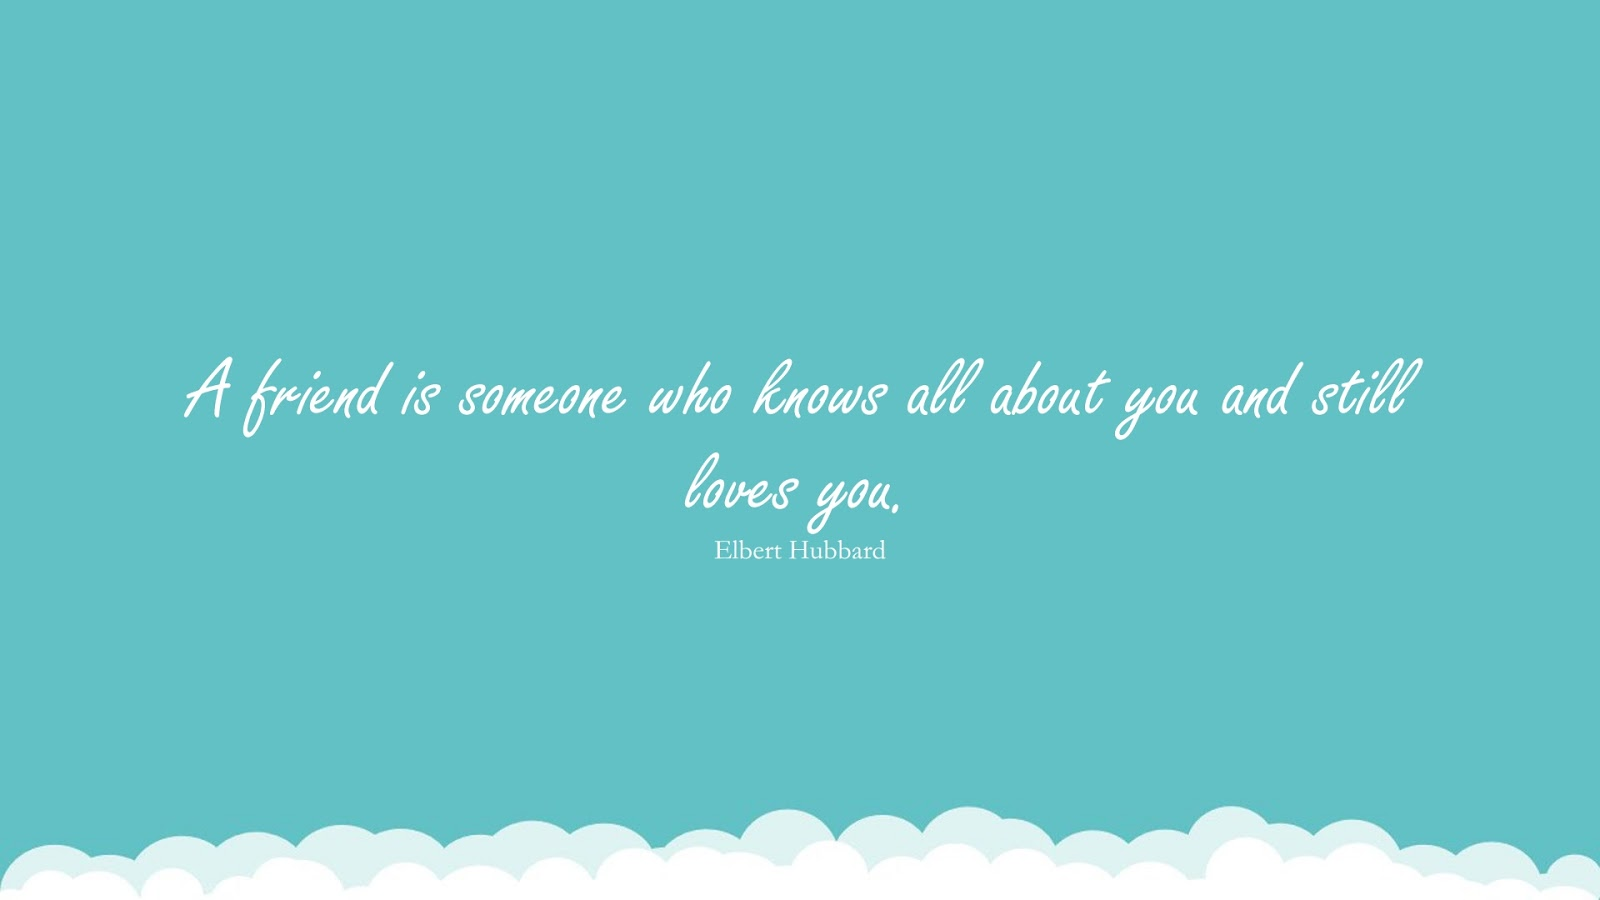 A friend is someone who knows all about you and still loves you. (Elbert Hubbard);  #LoveQuotes